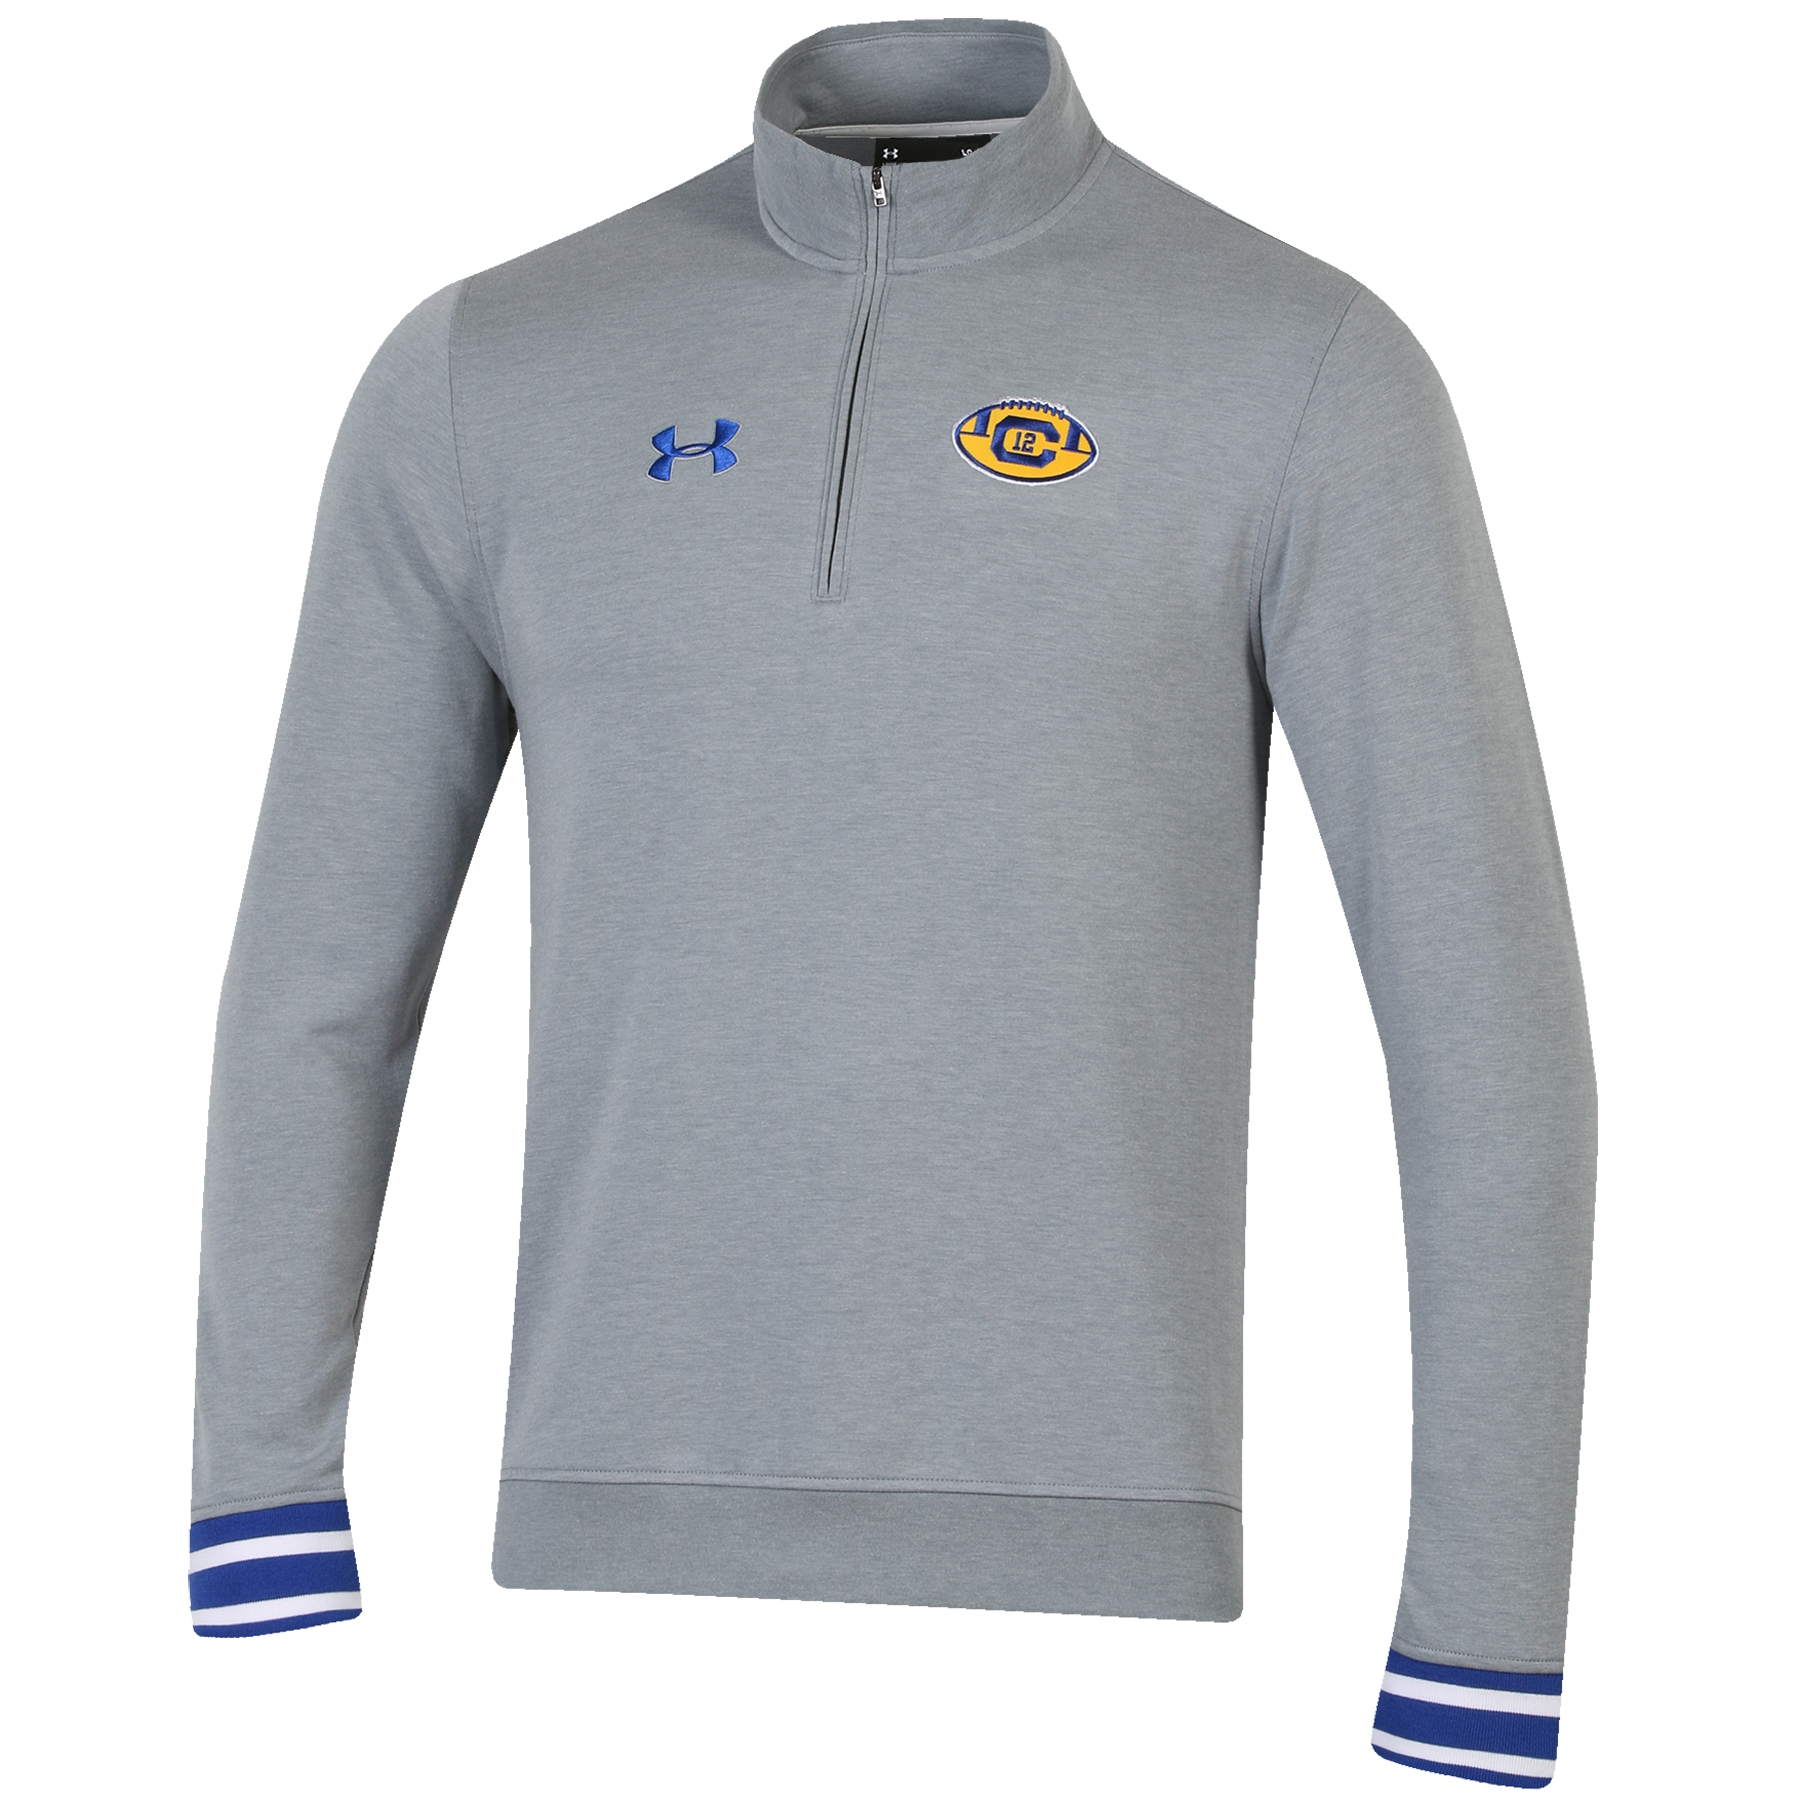 University of California Berkeley Under Armour Iconic 1/4 Sweater Fleece